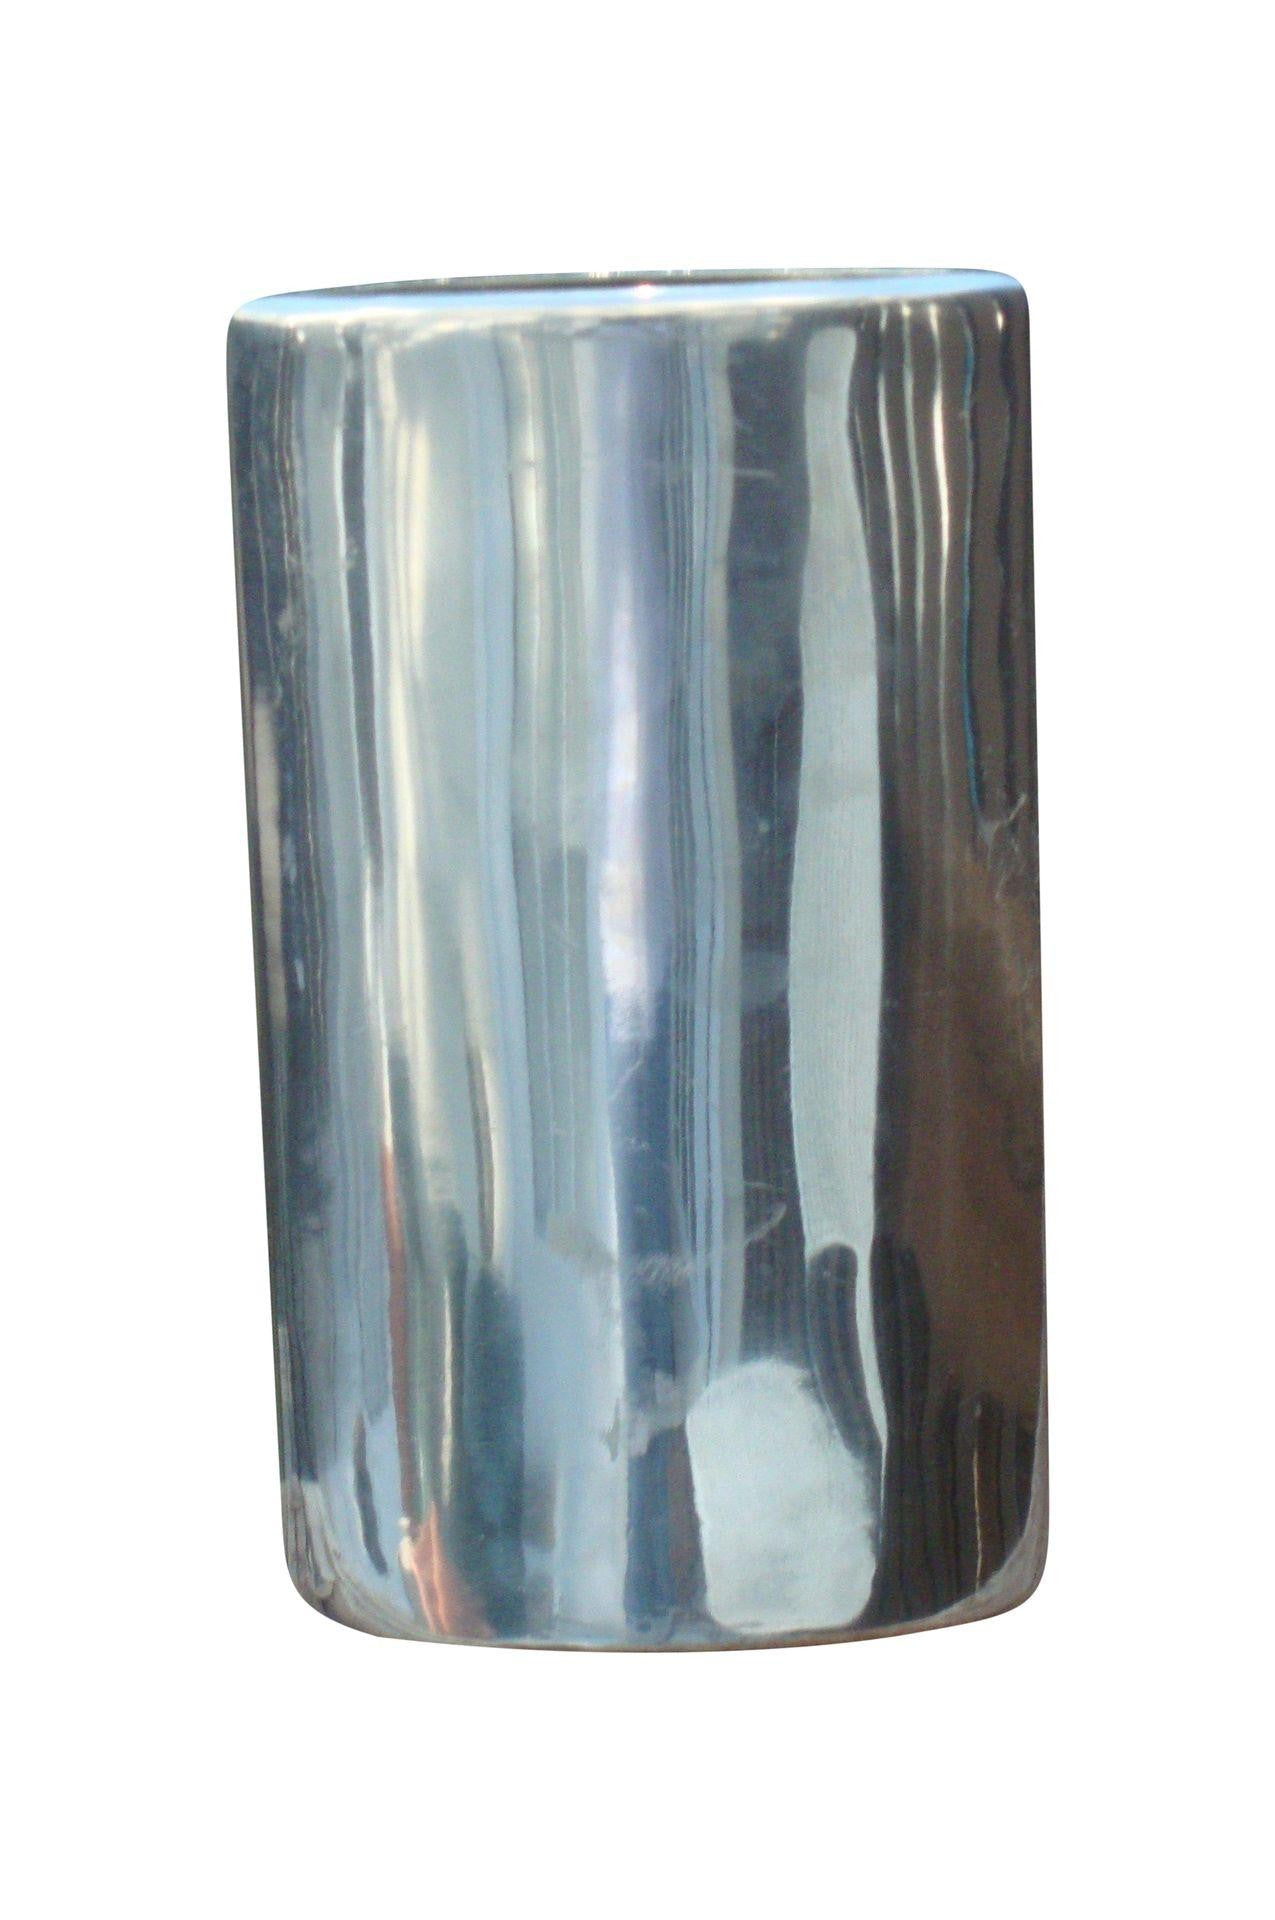 [SOLD] Spal Portugal Modern Stainless Steel Chrome Vase